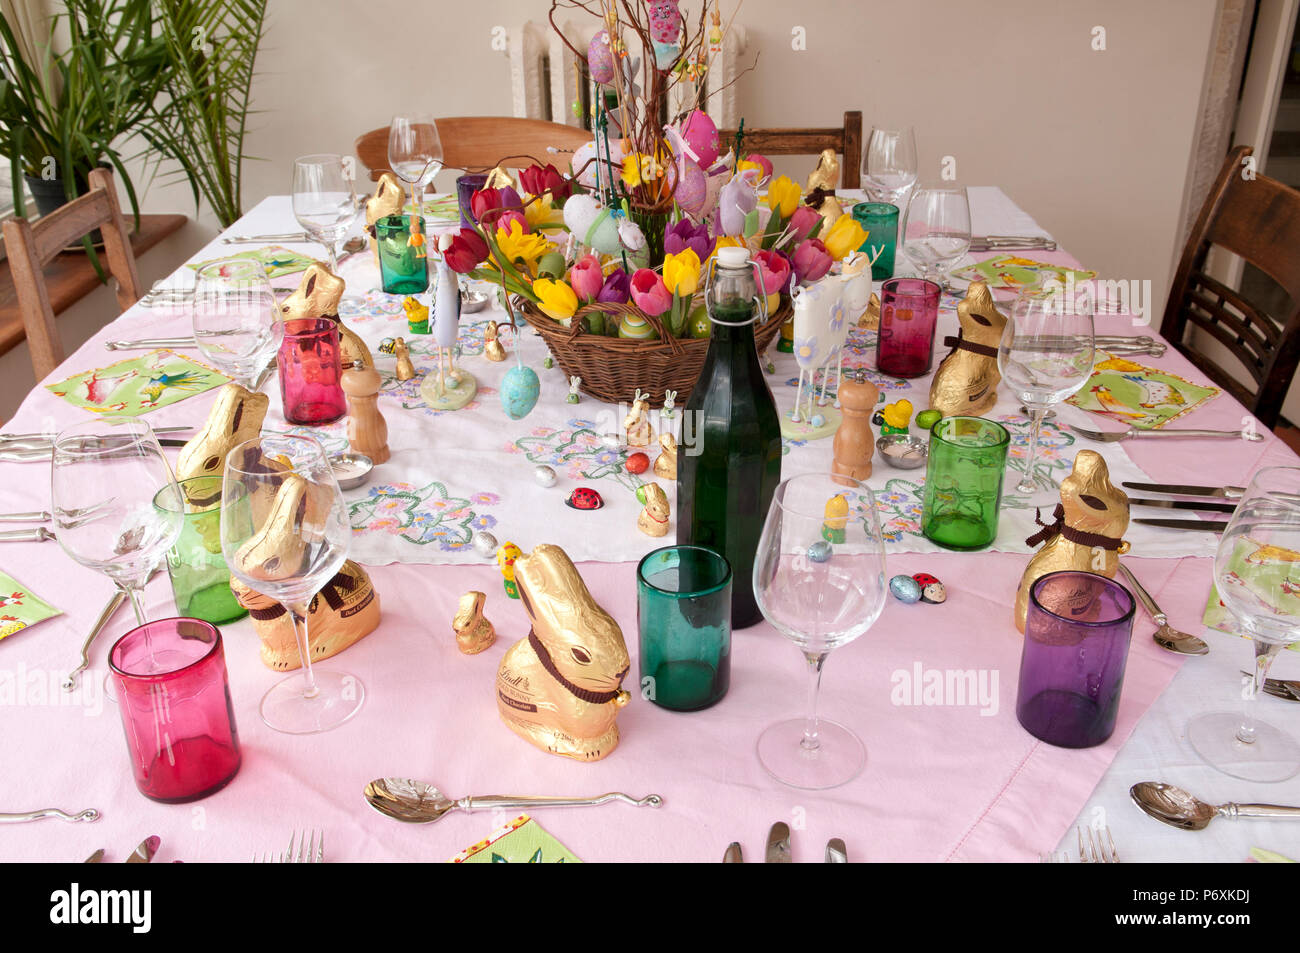 Dining Table Laid With Beautiful Spring Flowers And Easter Decorations Stock Photo Alamy